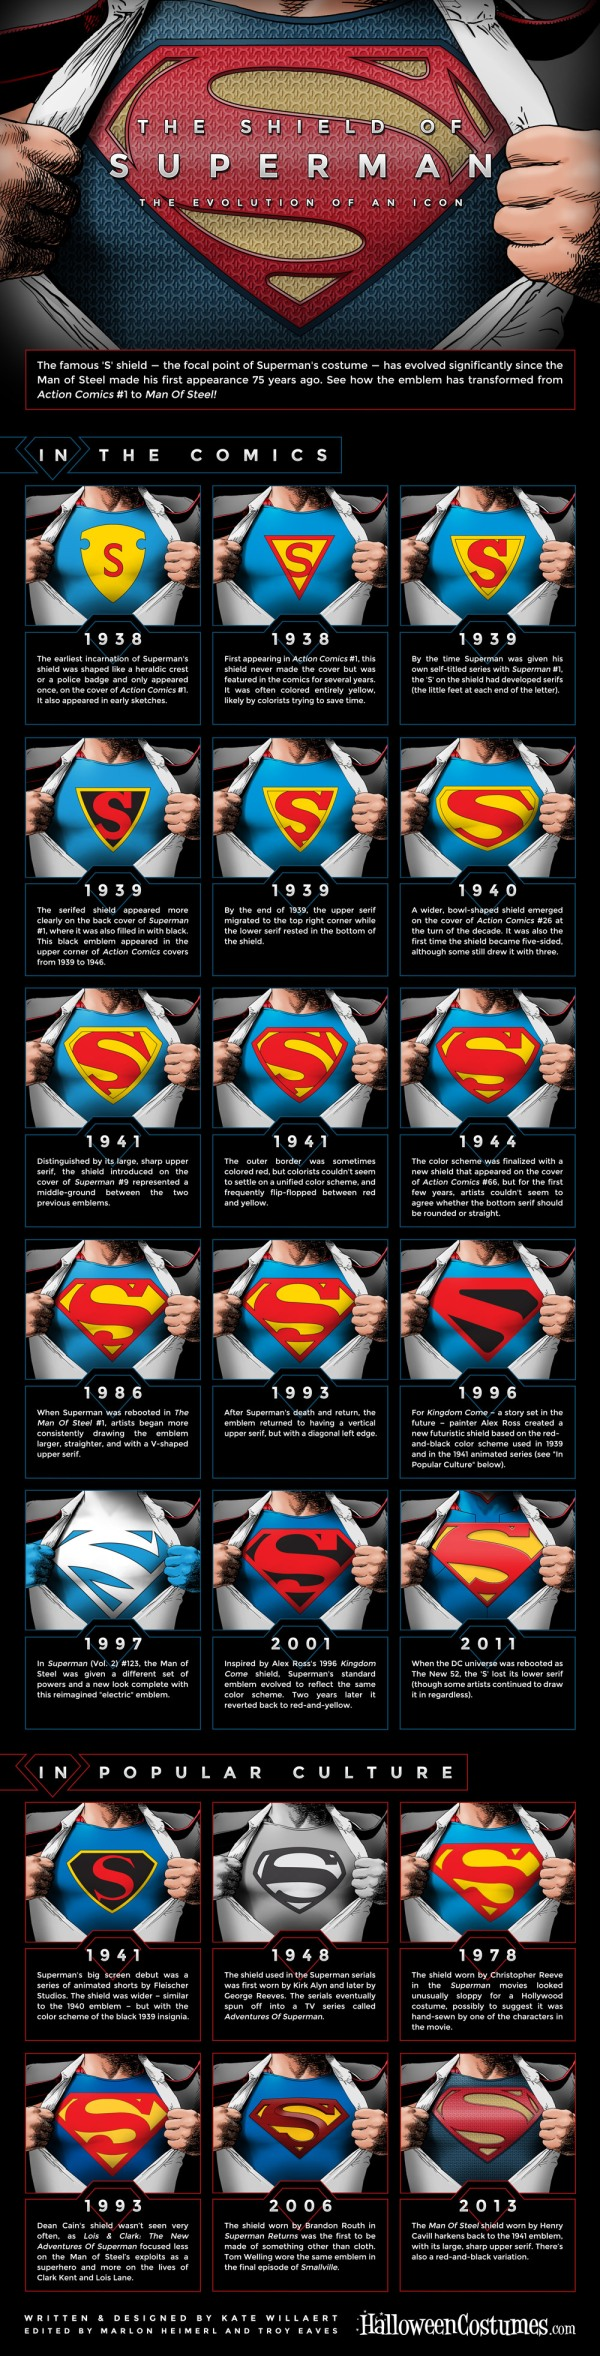 superman-infographic-1